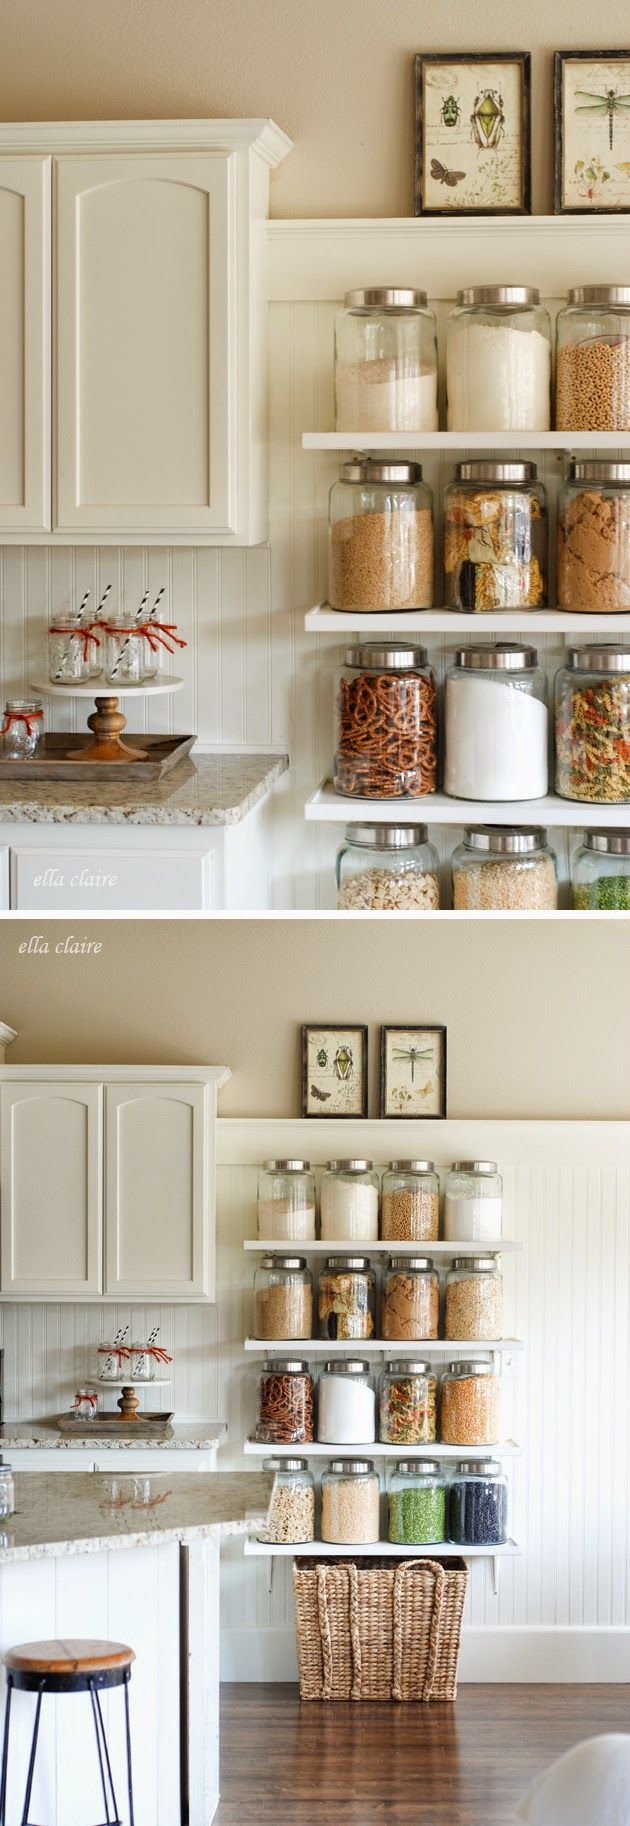 Diy country store kitchen shelves glass canisters for Shelving in kitchen